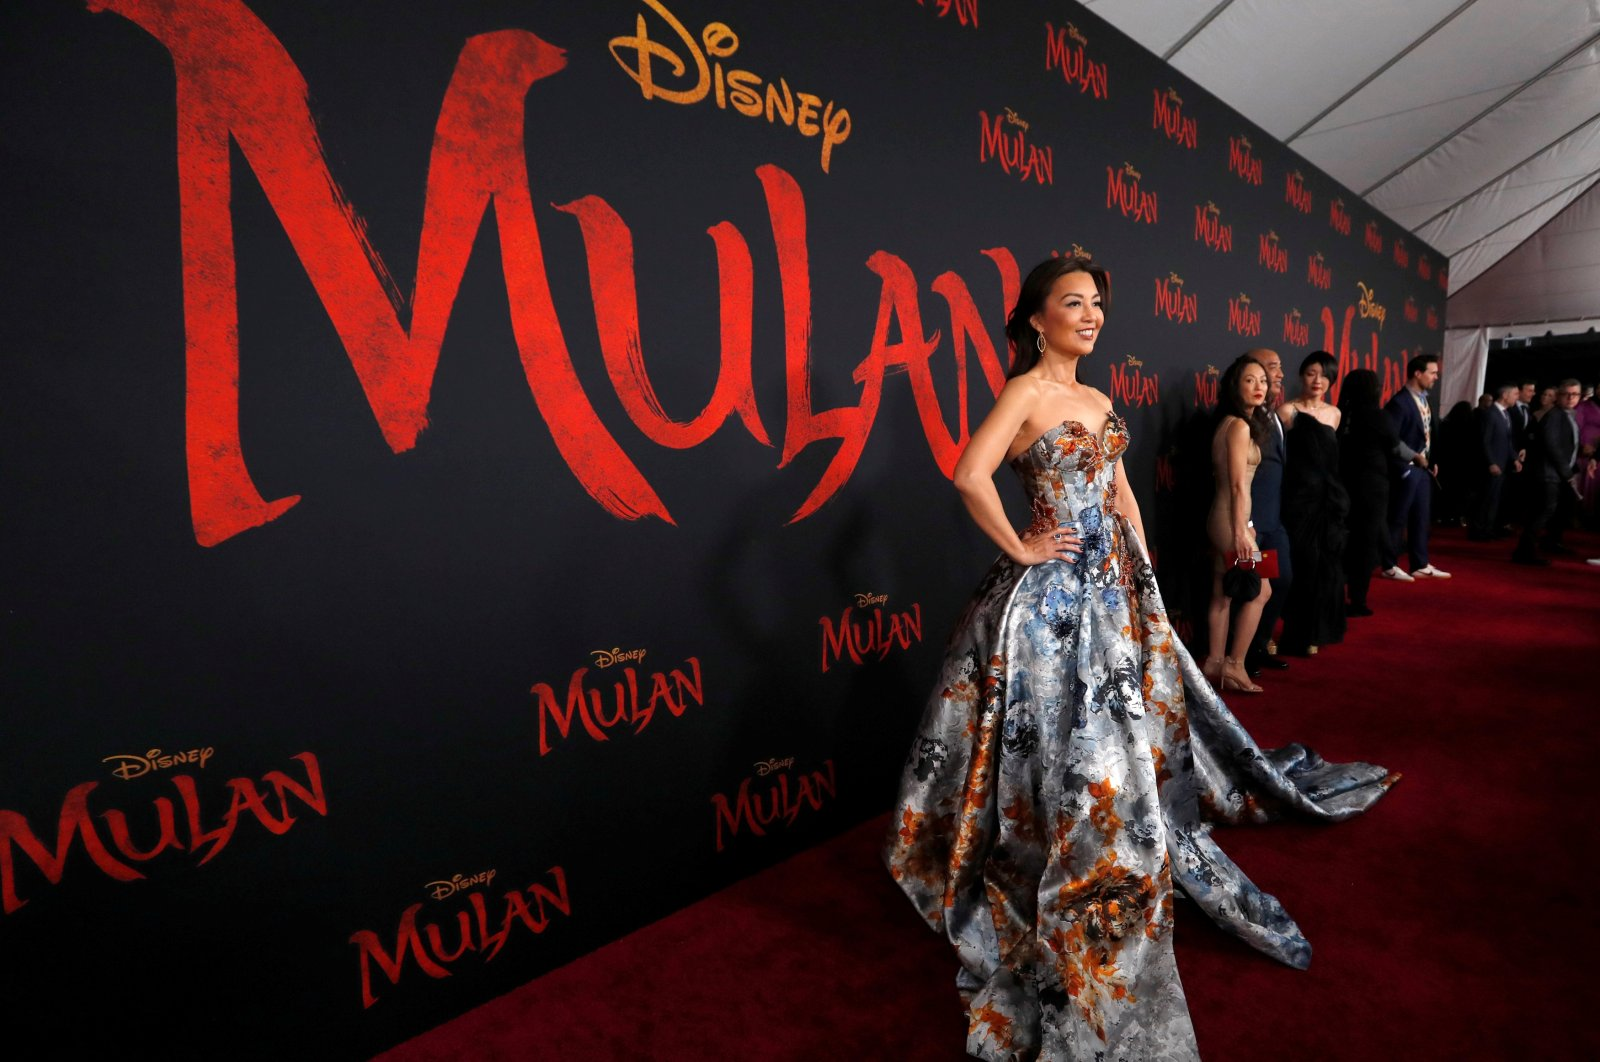 """Actor Ming-Na Wen poses at the premiere for the film """"Mulan"""" in Los Angeles, California, U.S., March 9, 2020. (Reuters Photo)"""